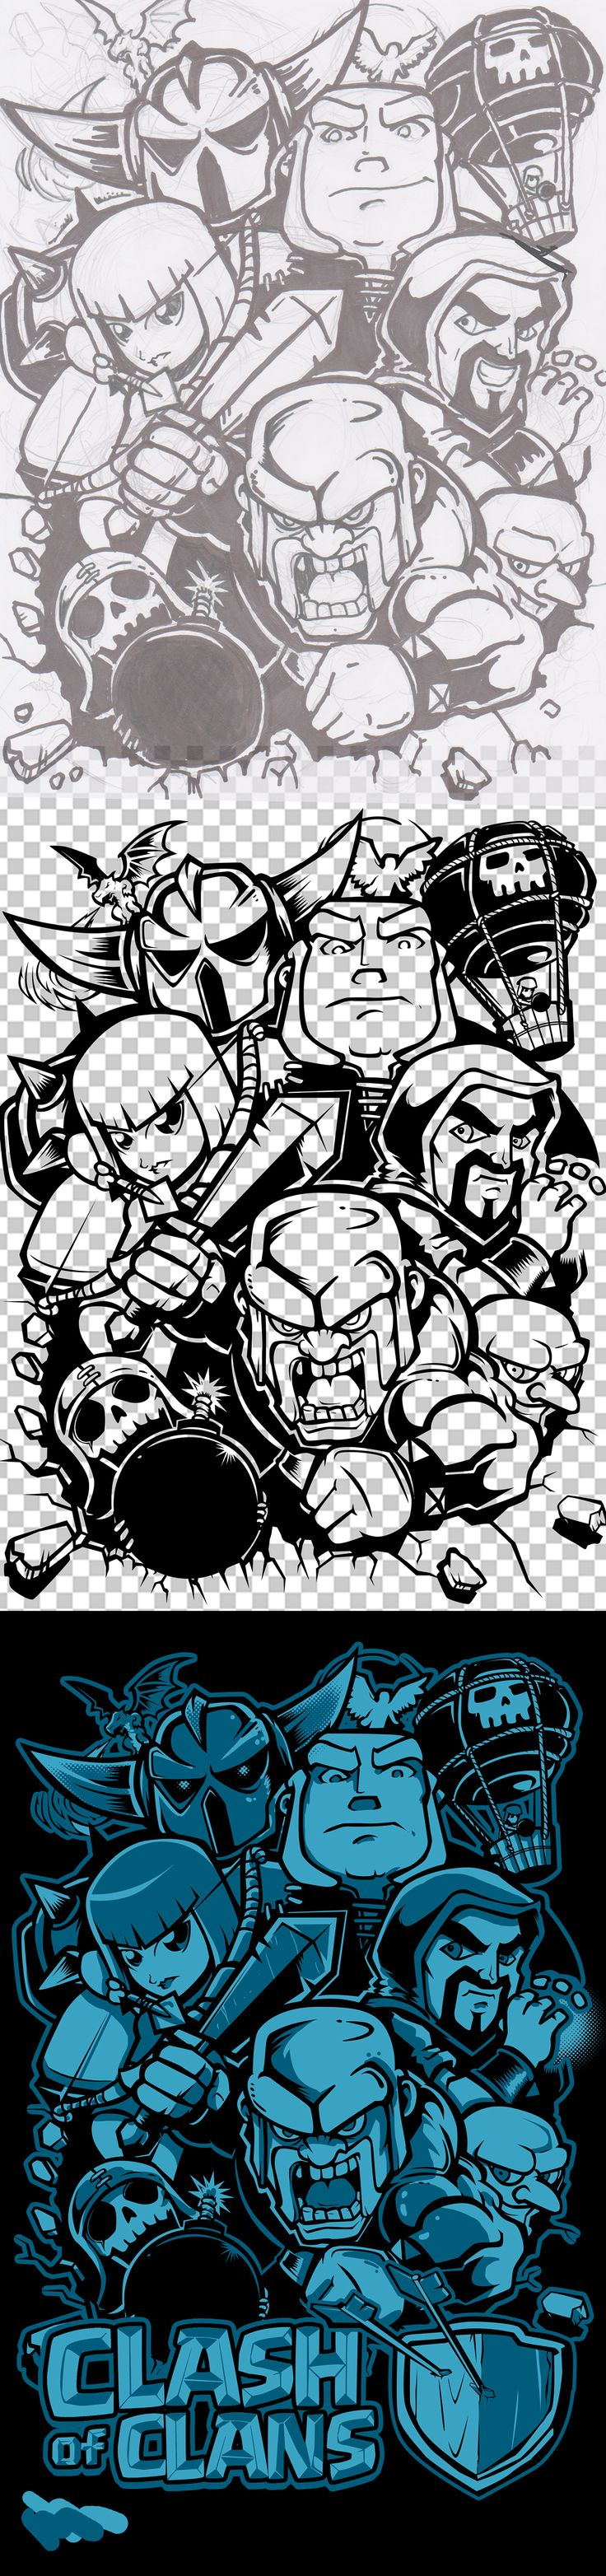 Clash of Clan design i did whid two shades of blue on black back ground